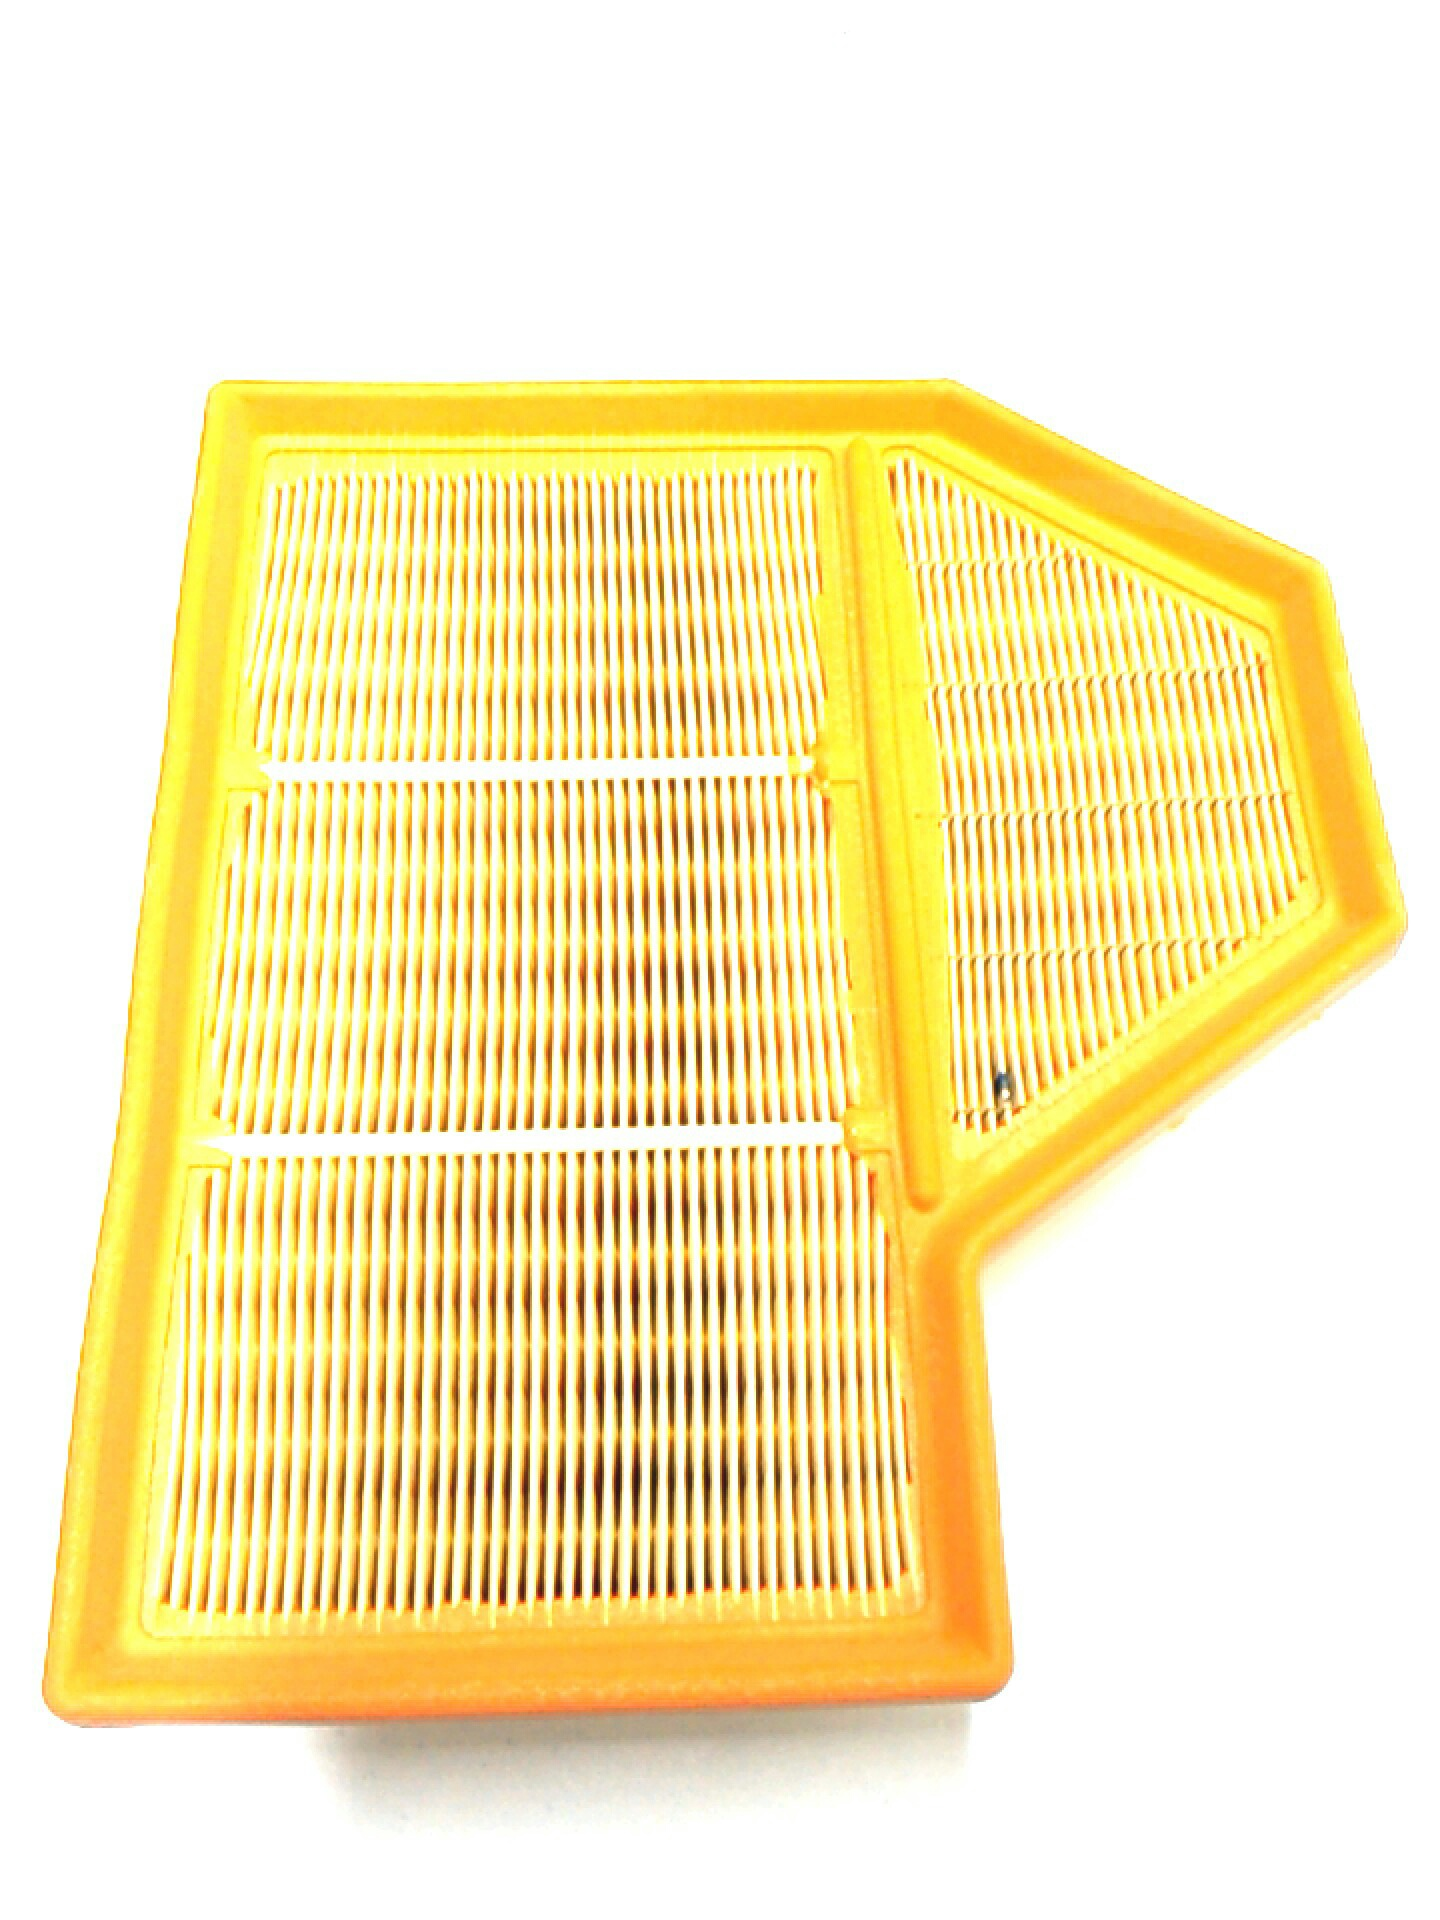 2011 bmw air filter element  right intake  service  oil